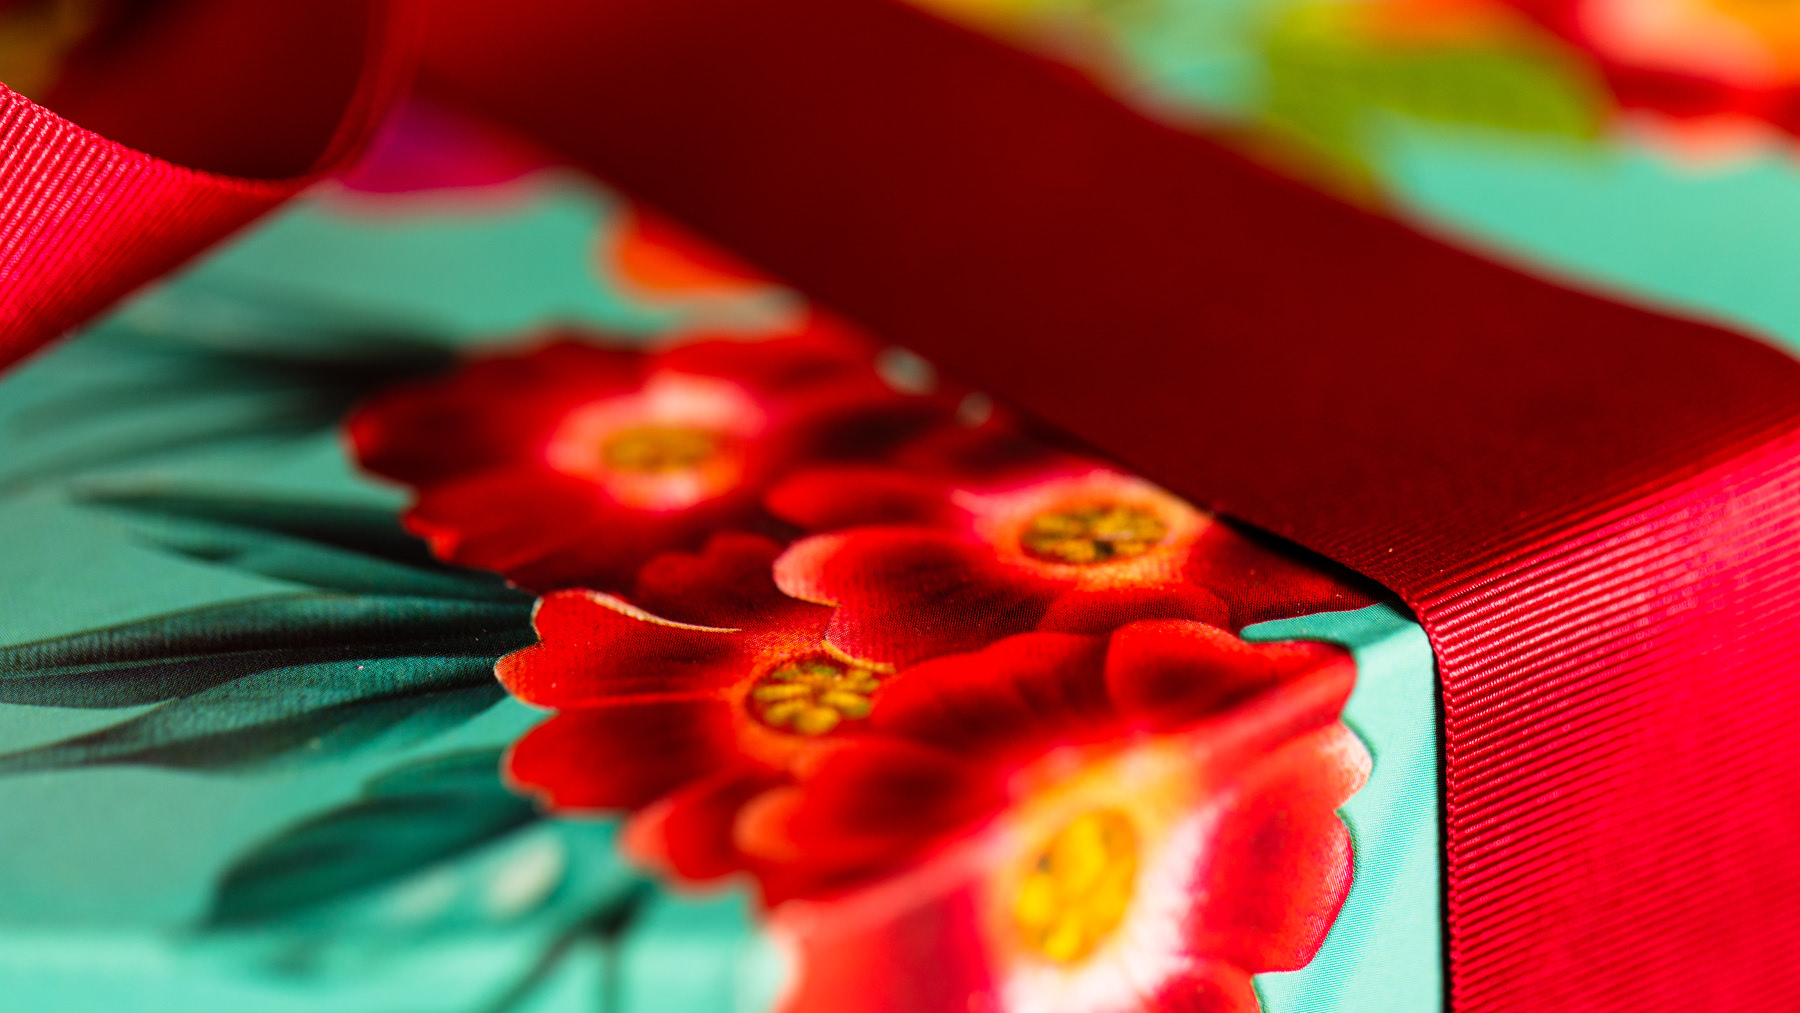 A close up image of a jewel coloured, floral designed gift box with a red ribbon